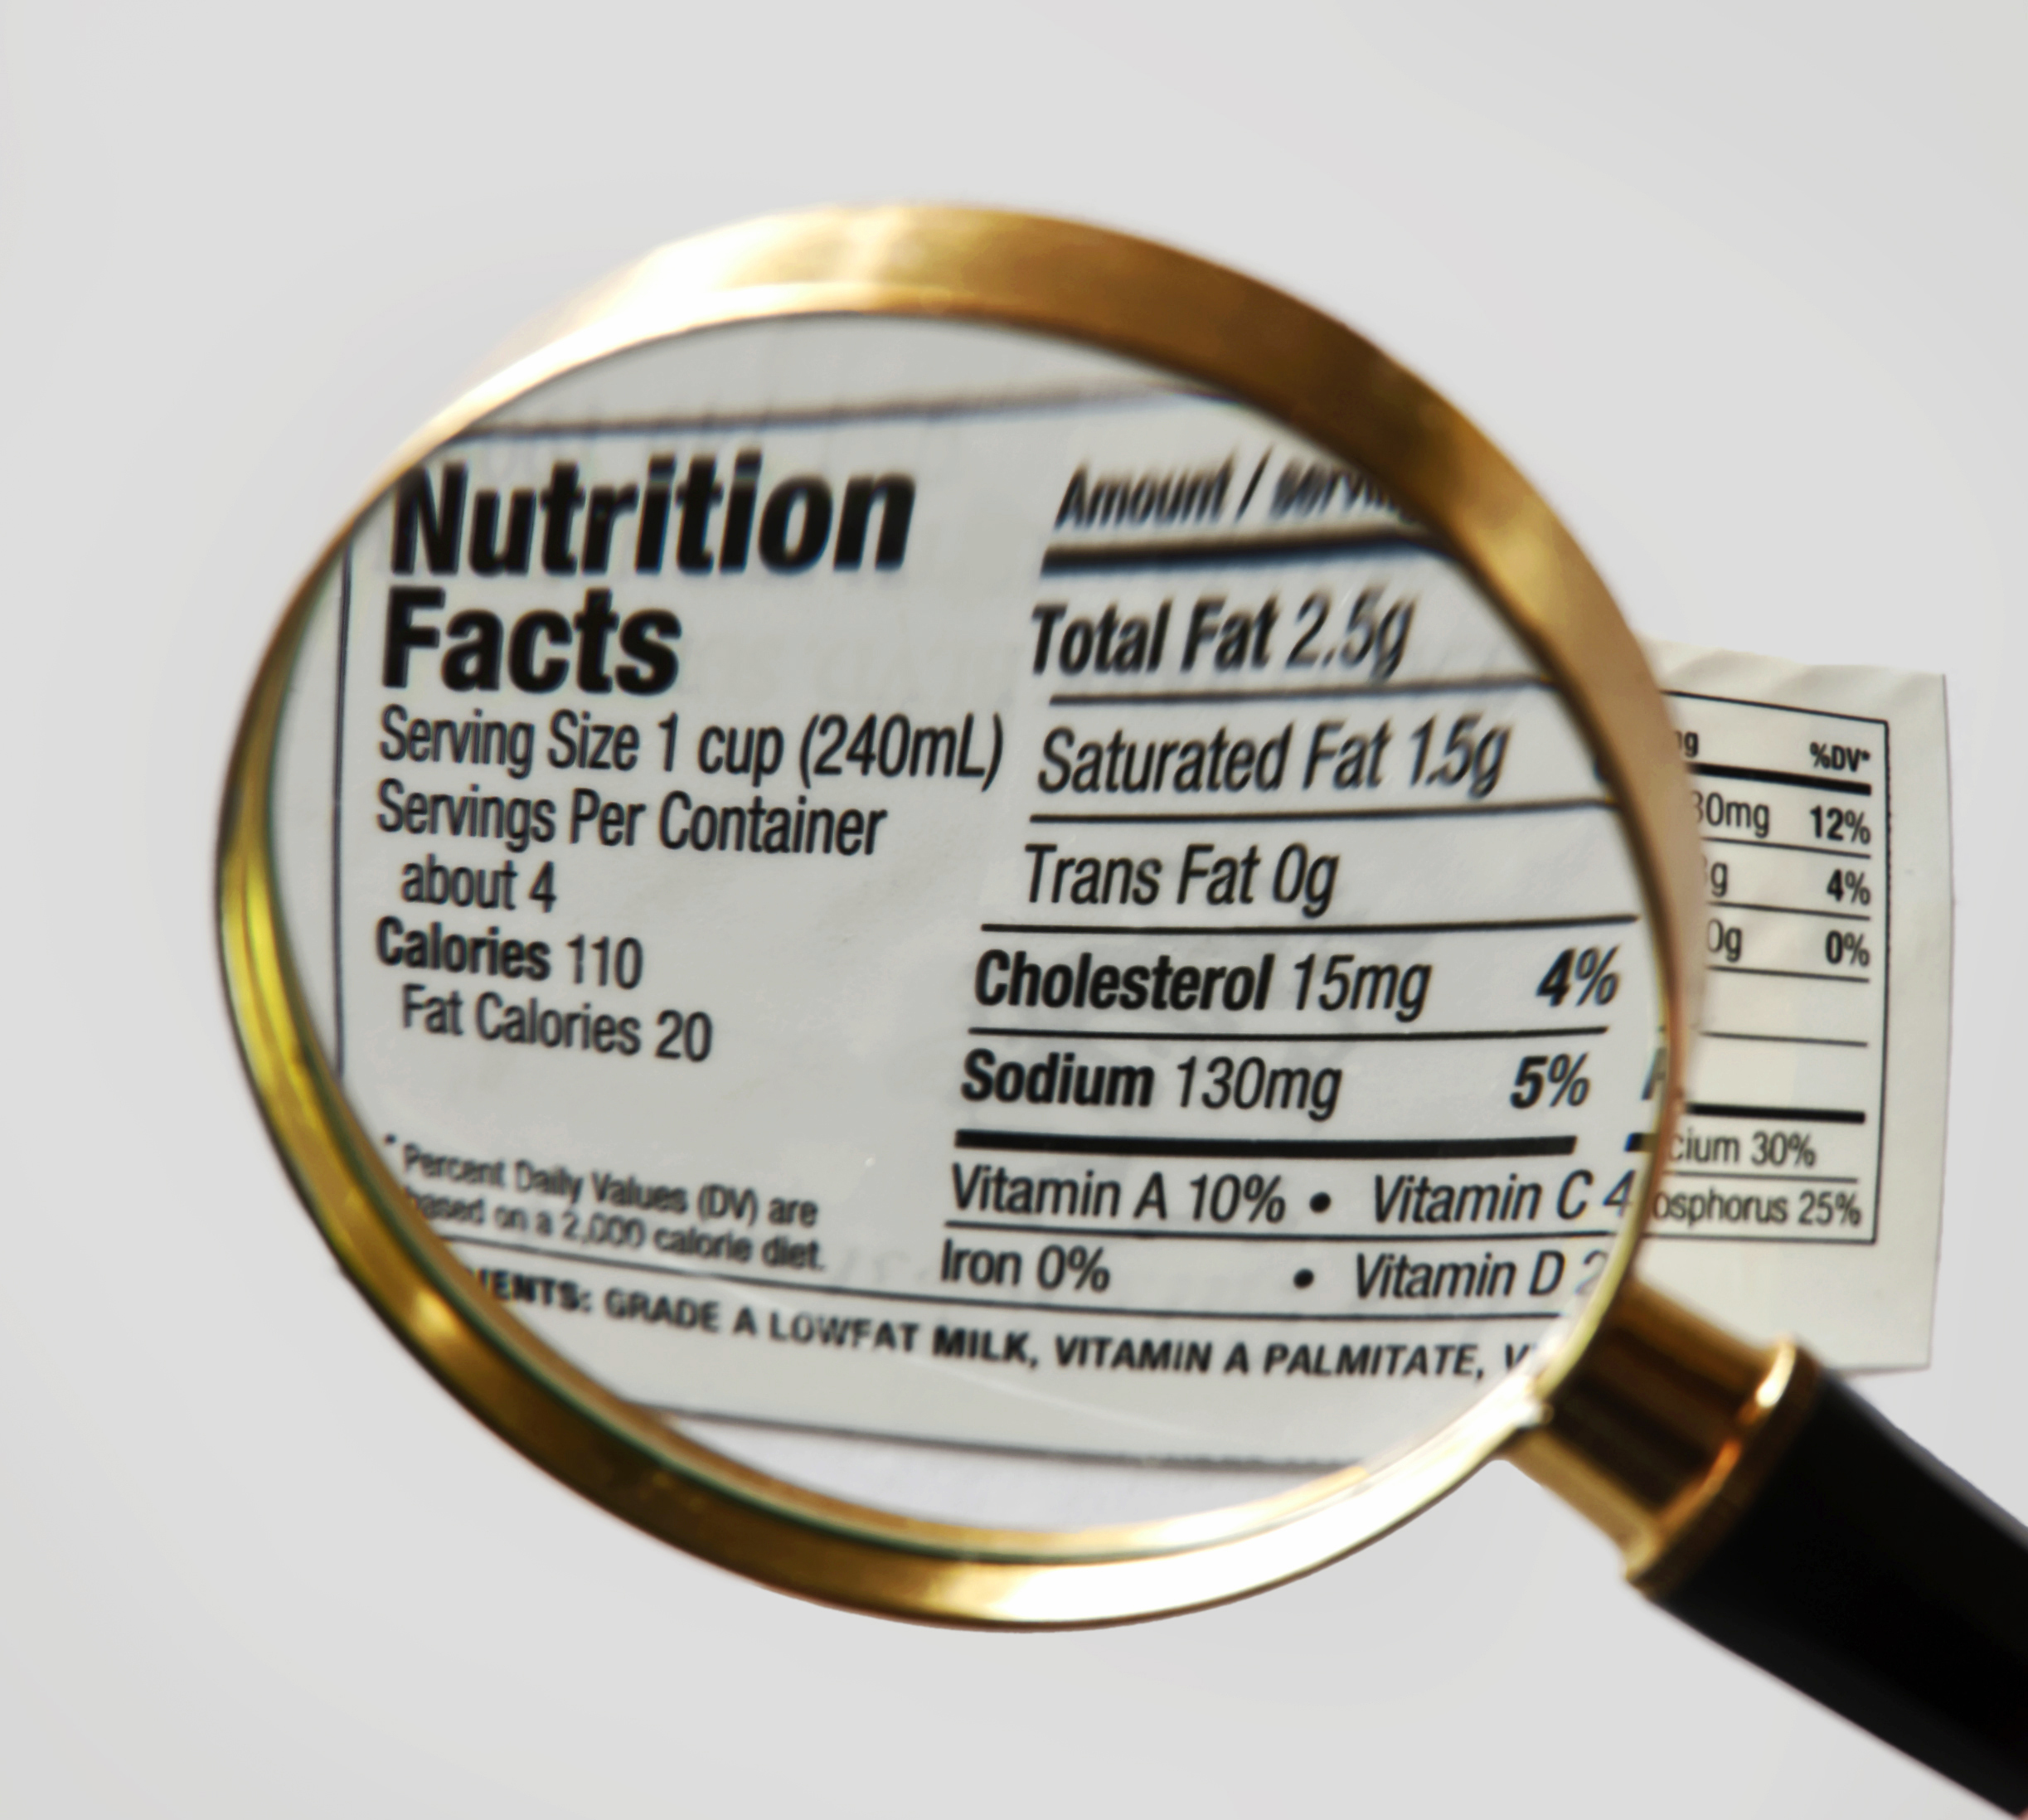 Fda Compliant Nutrition Facts Label Changes Get Planning